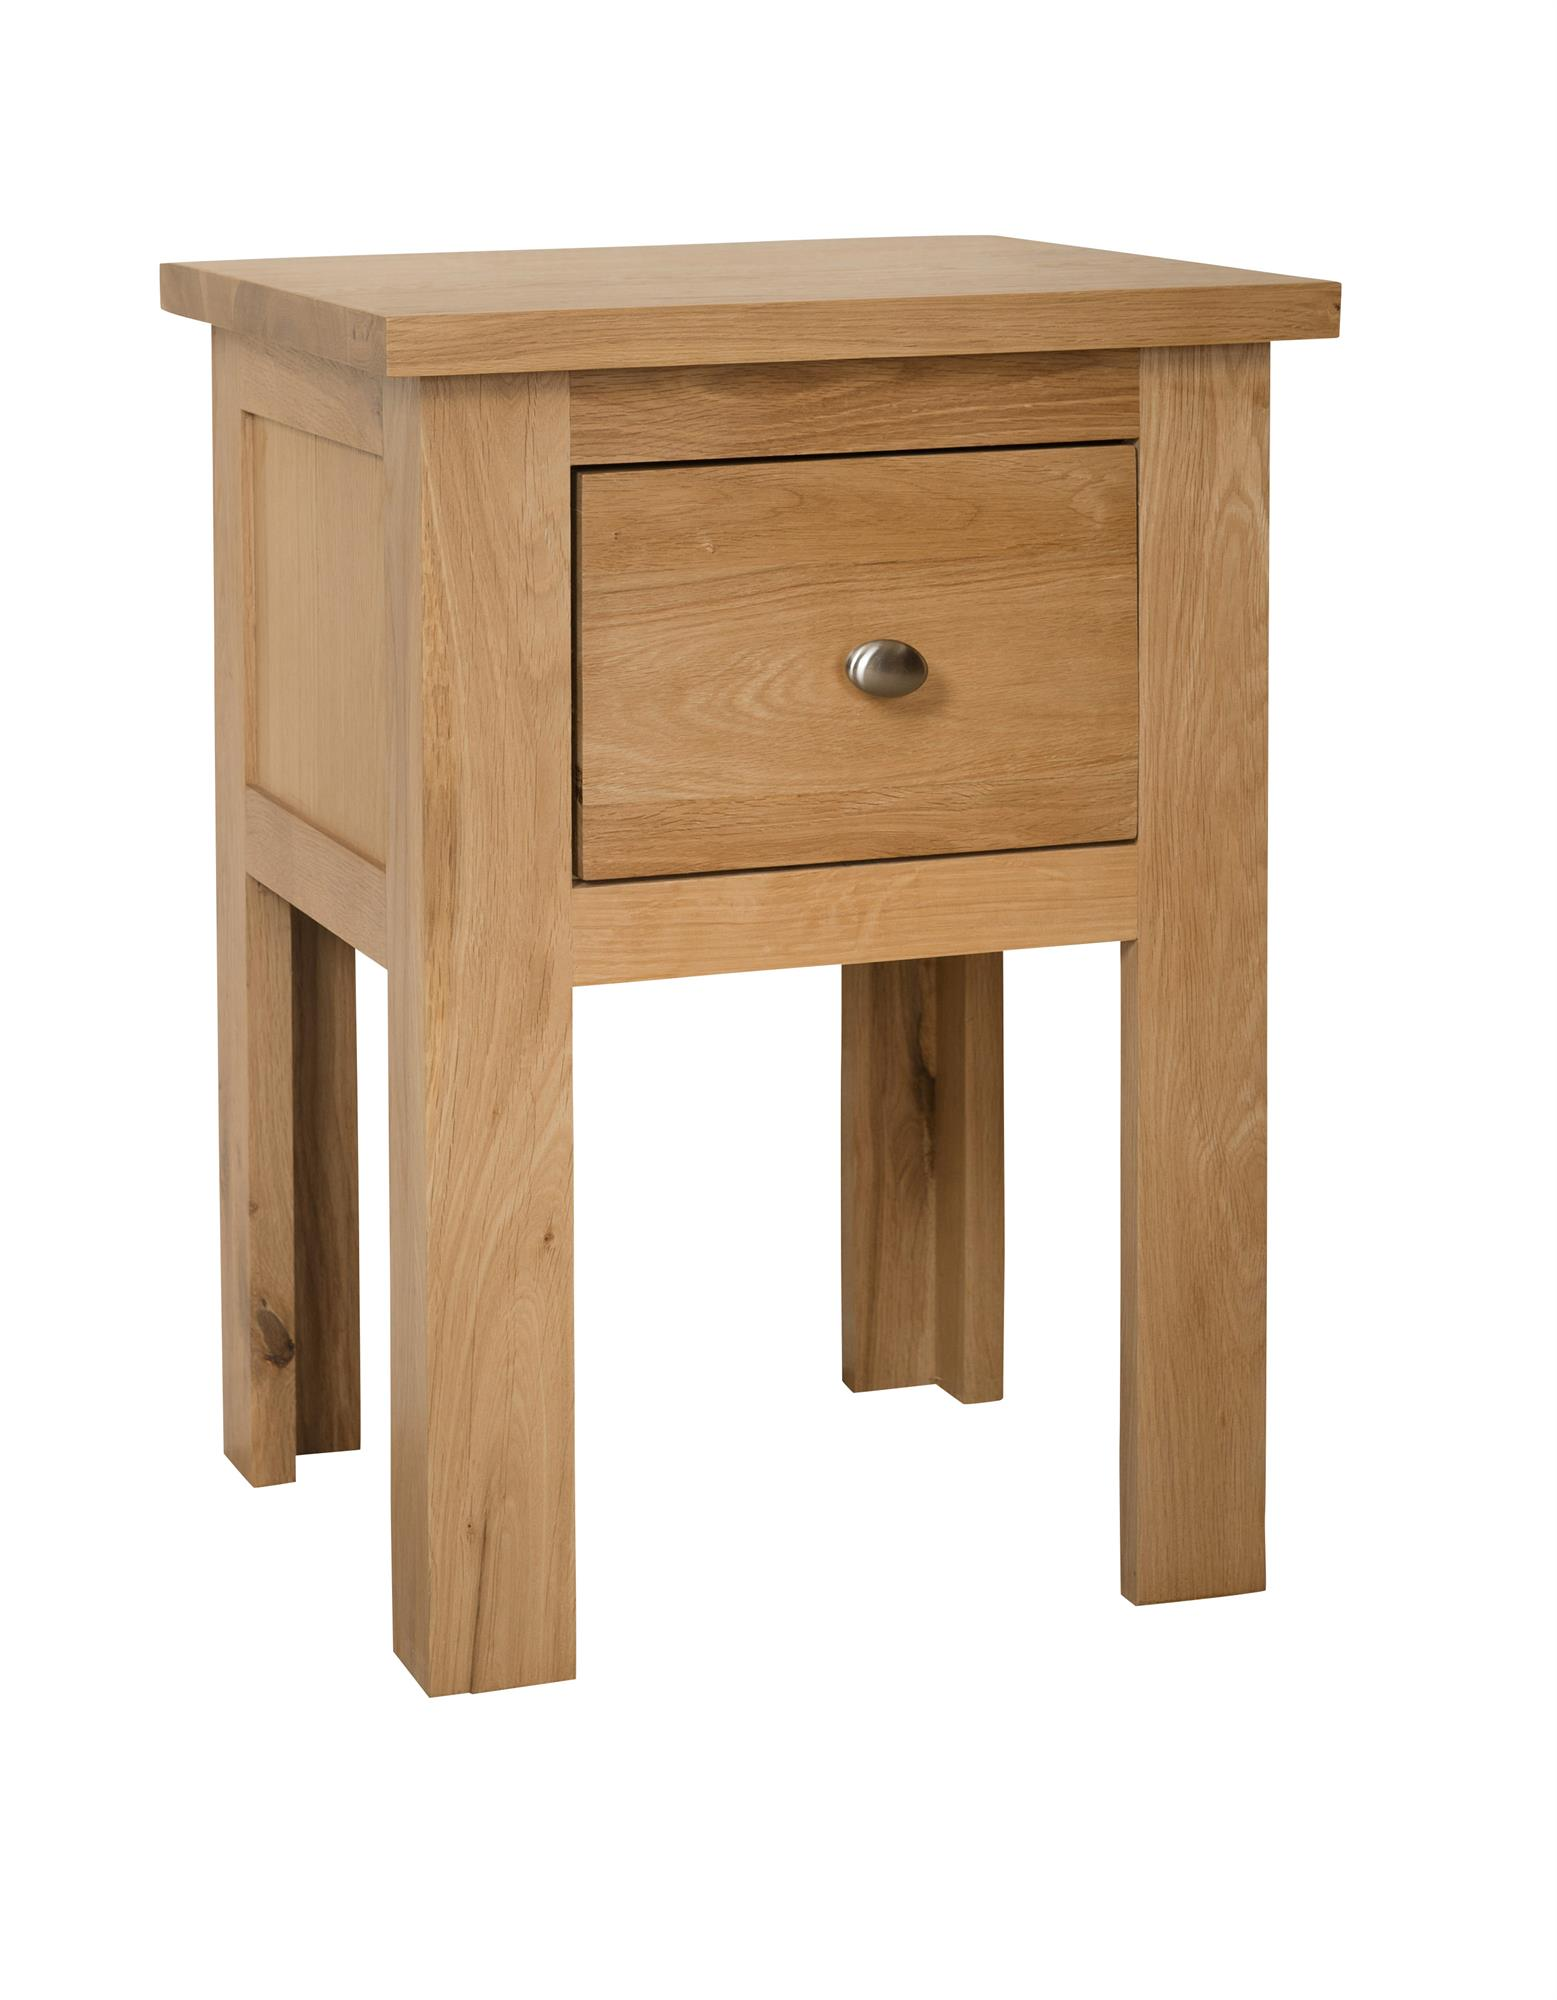 OAK - LAMP Table with darwer